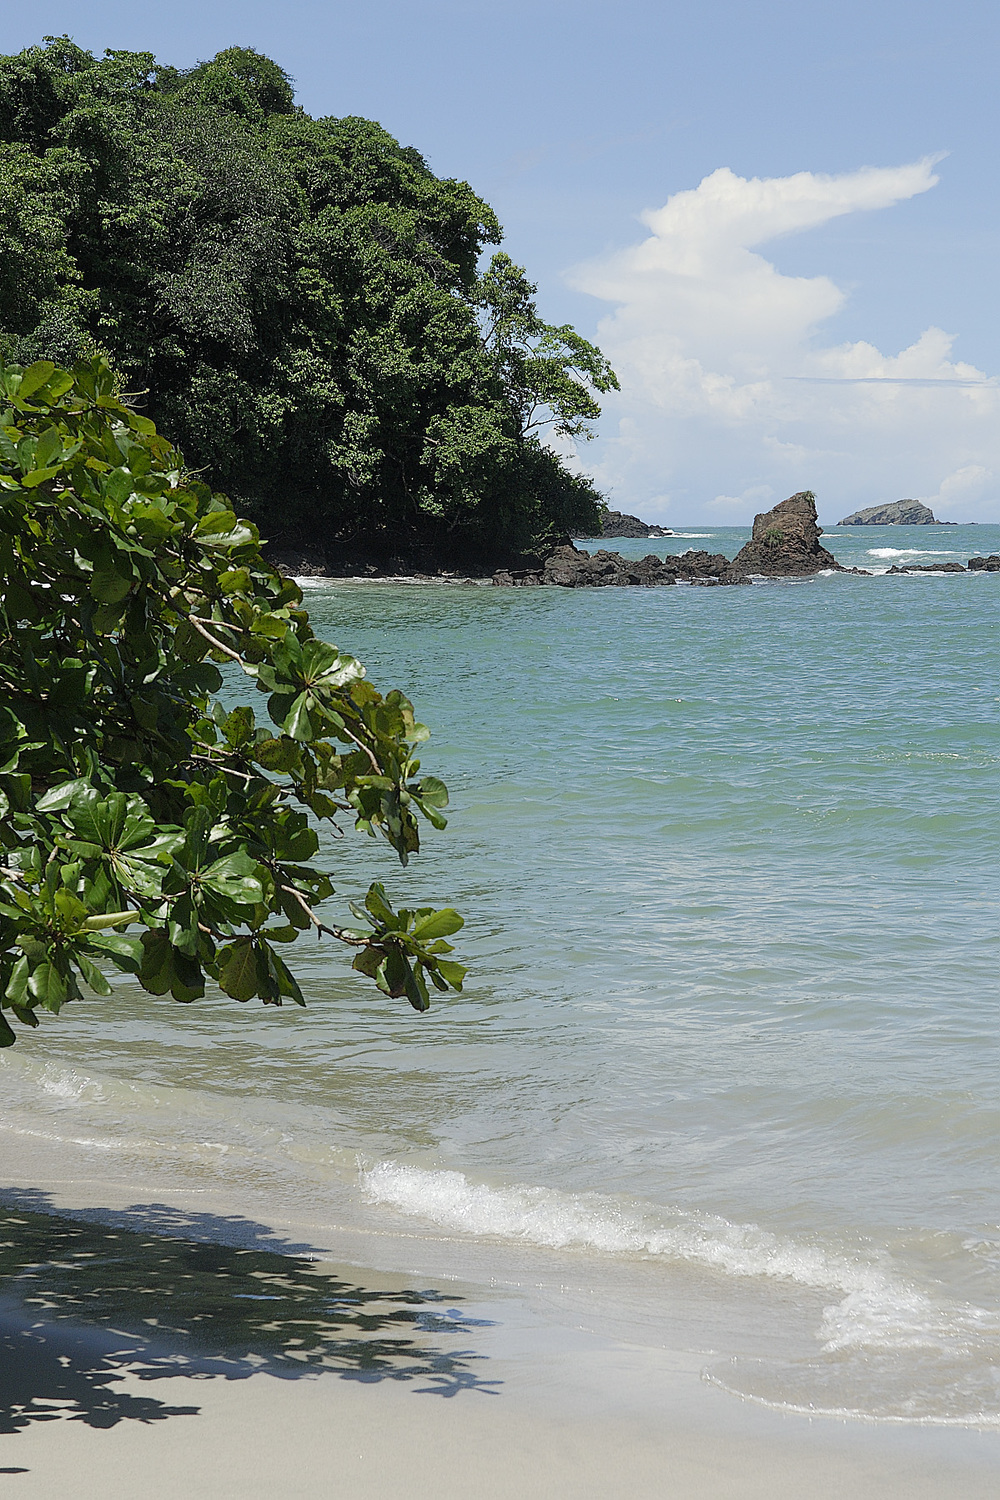 The hike through the rain forest ends at a beautiful beach on the Pacific ocean, which makes PMA the perfect place to sample some wildlife in Costa Rica and enjoy some beach time too.